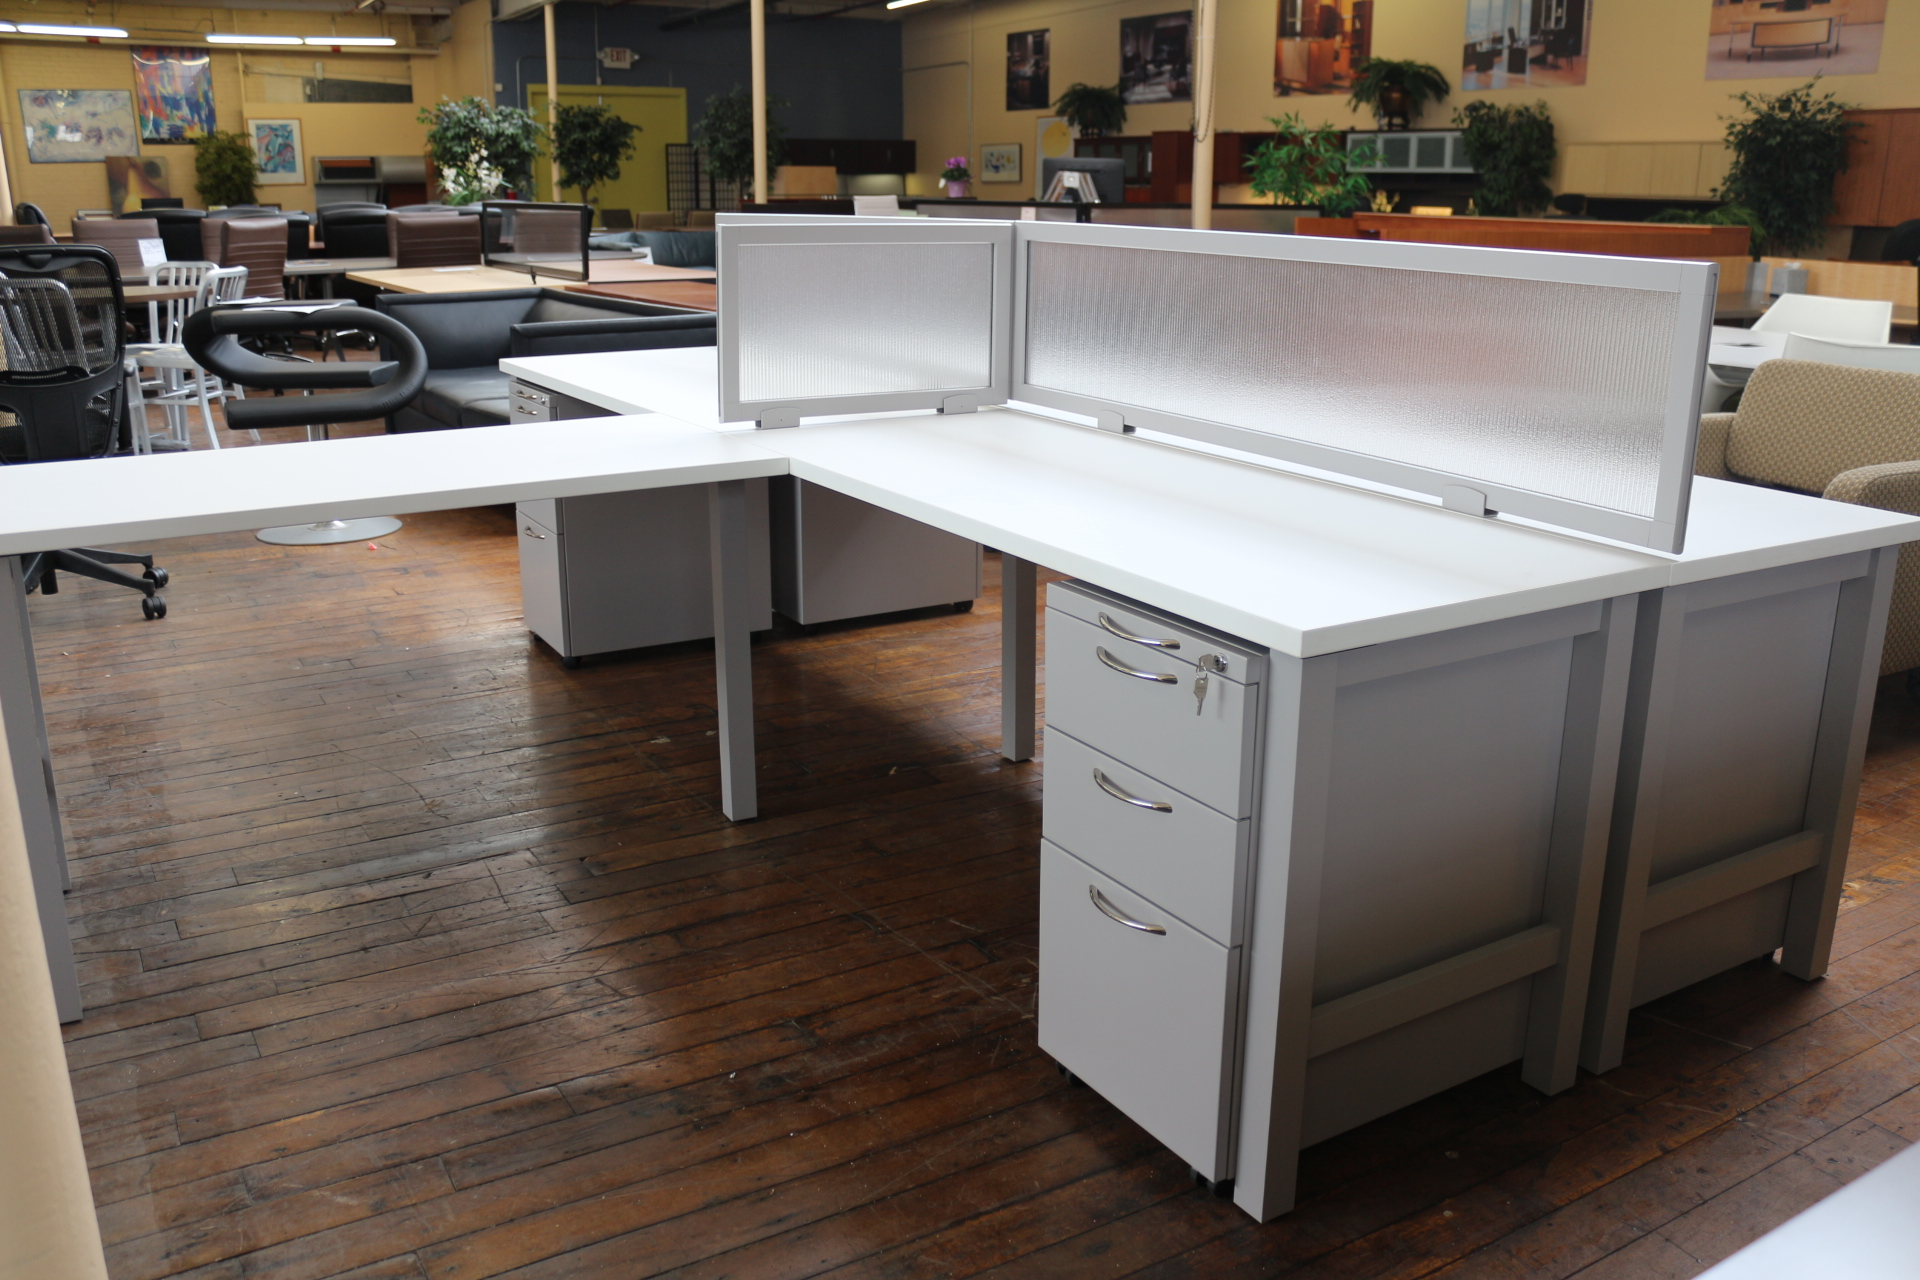 peartreeofficefurniture_peartreeofficefurniture_img_1065.jpg